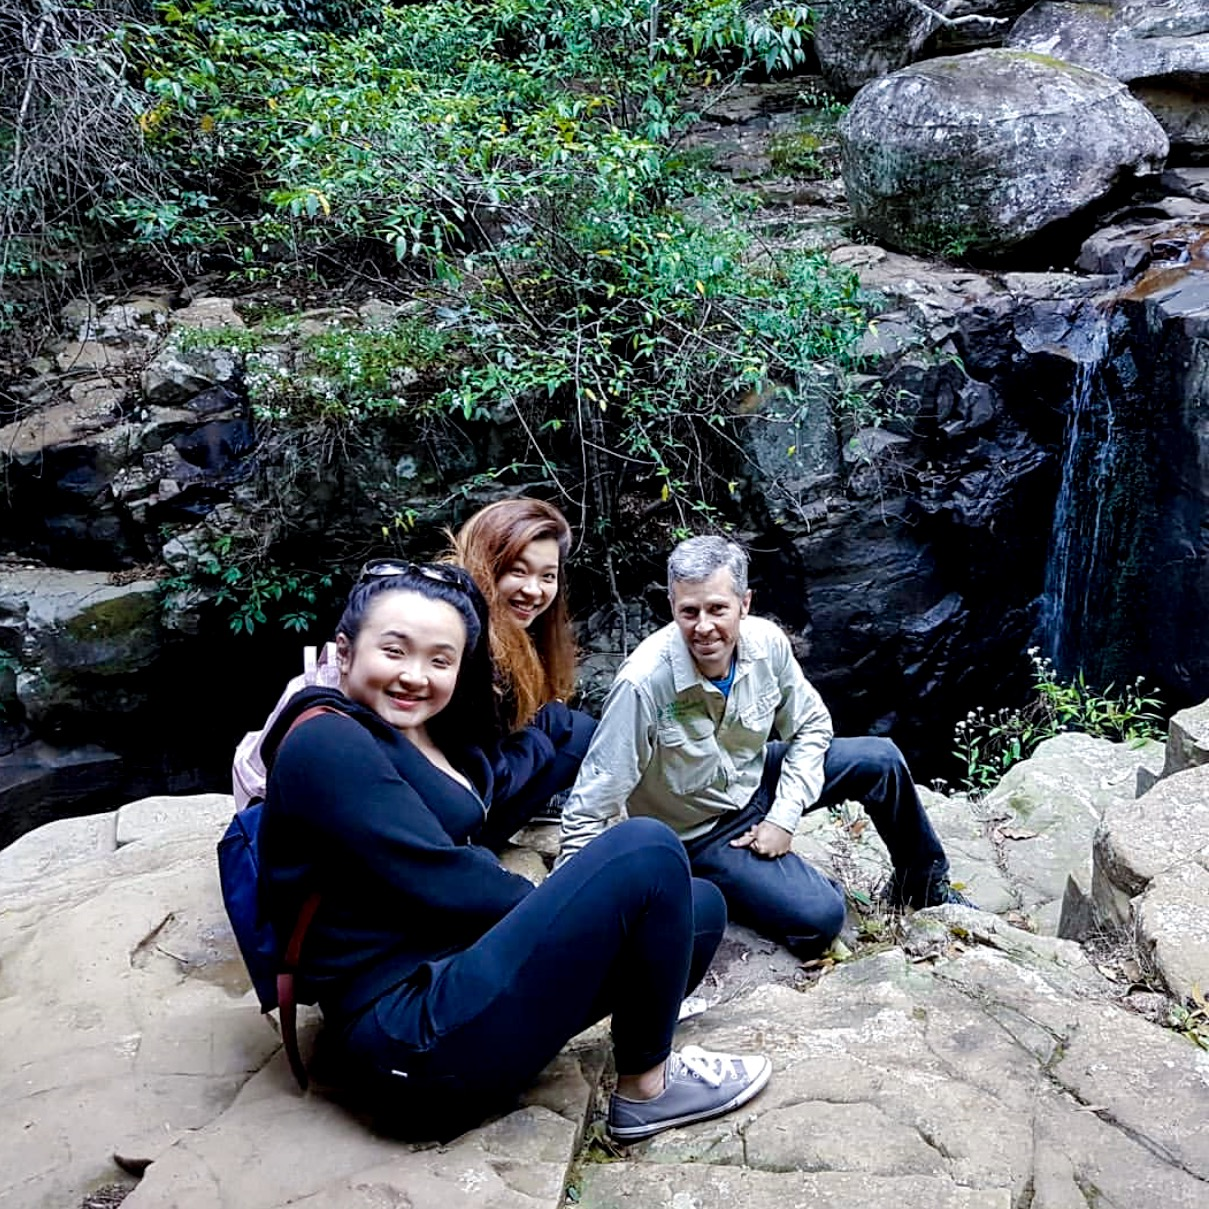 Things To Do In Shellharbour, Macquarie Pass National Park8.JPG